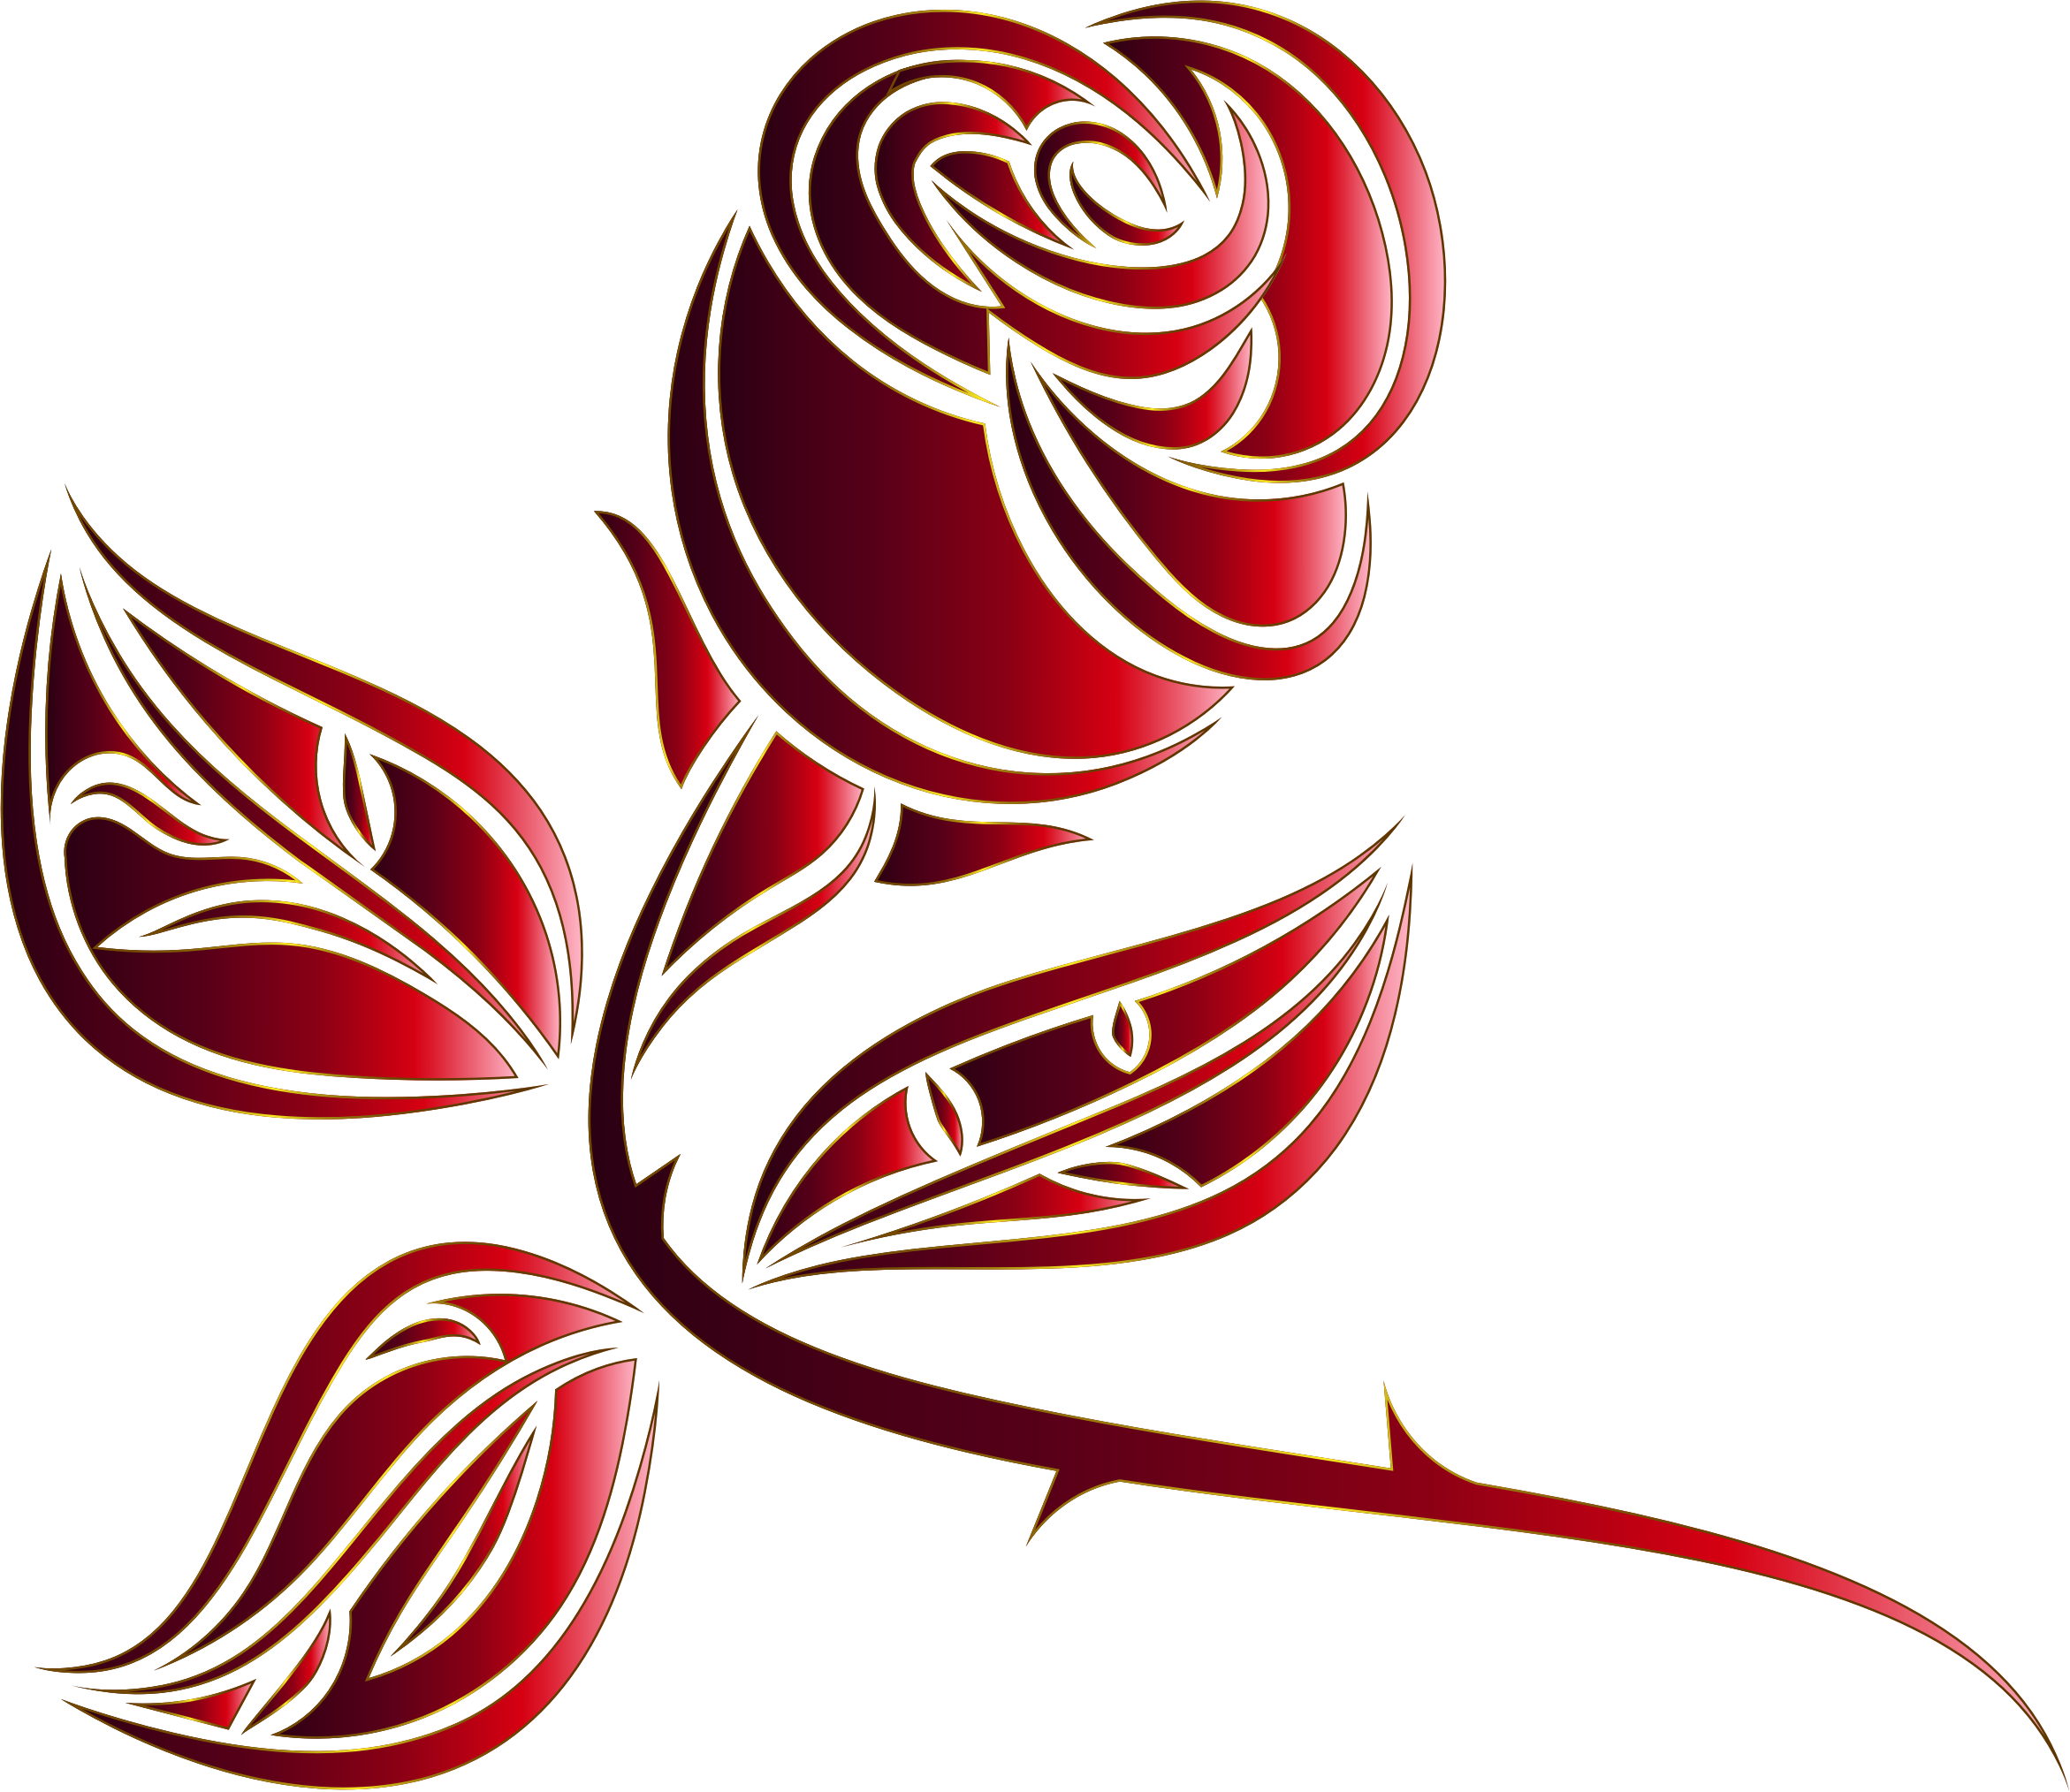 Stylized Rose Extended 8 Minus Background by GDJ